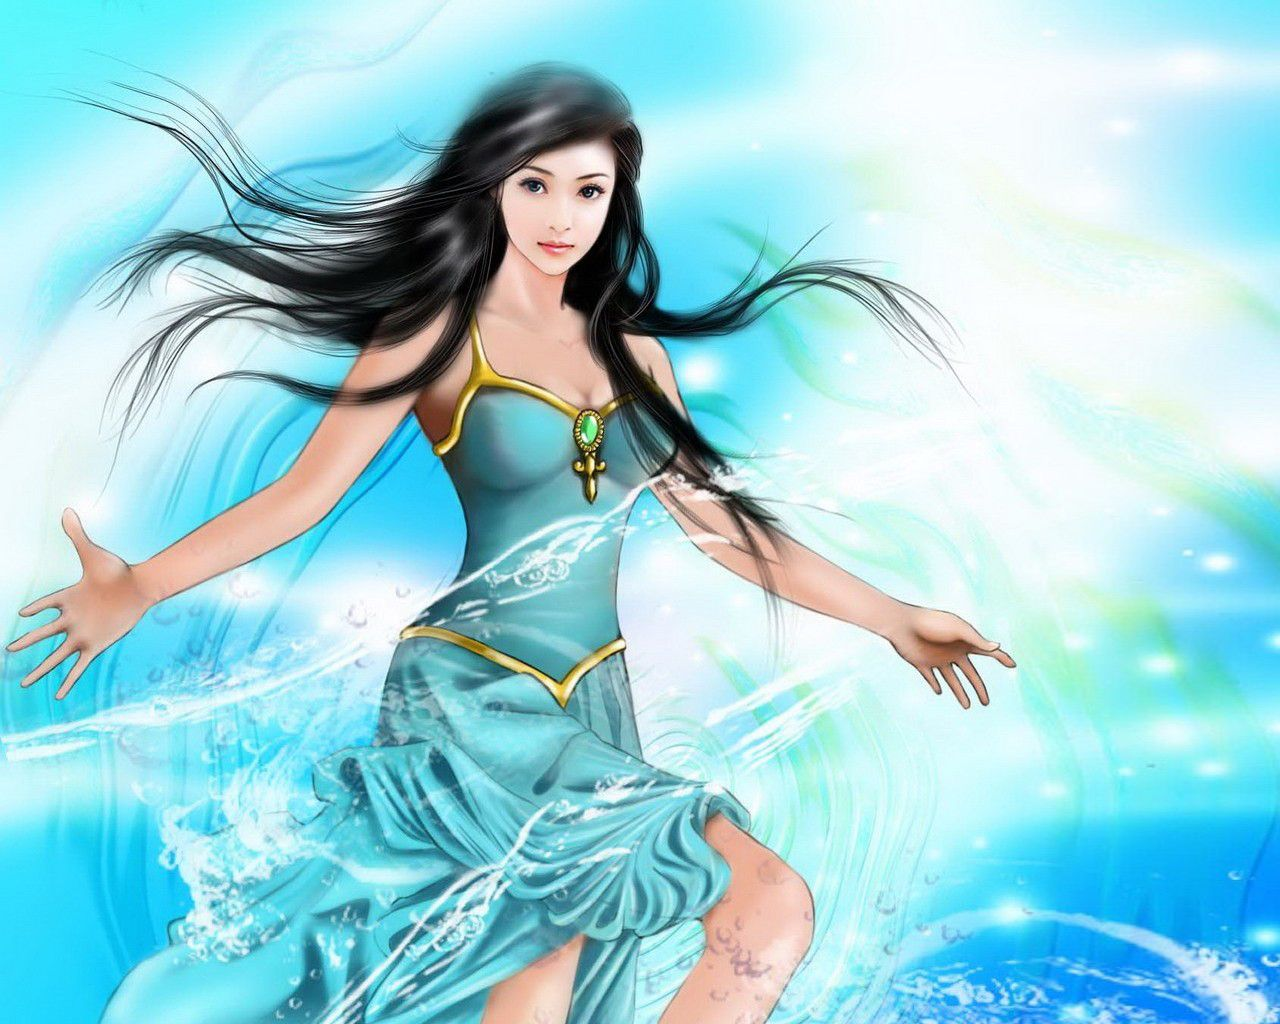 soulful | digital art | pinterest | fantasy girl, girl wallpaper and